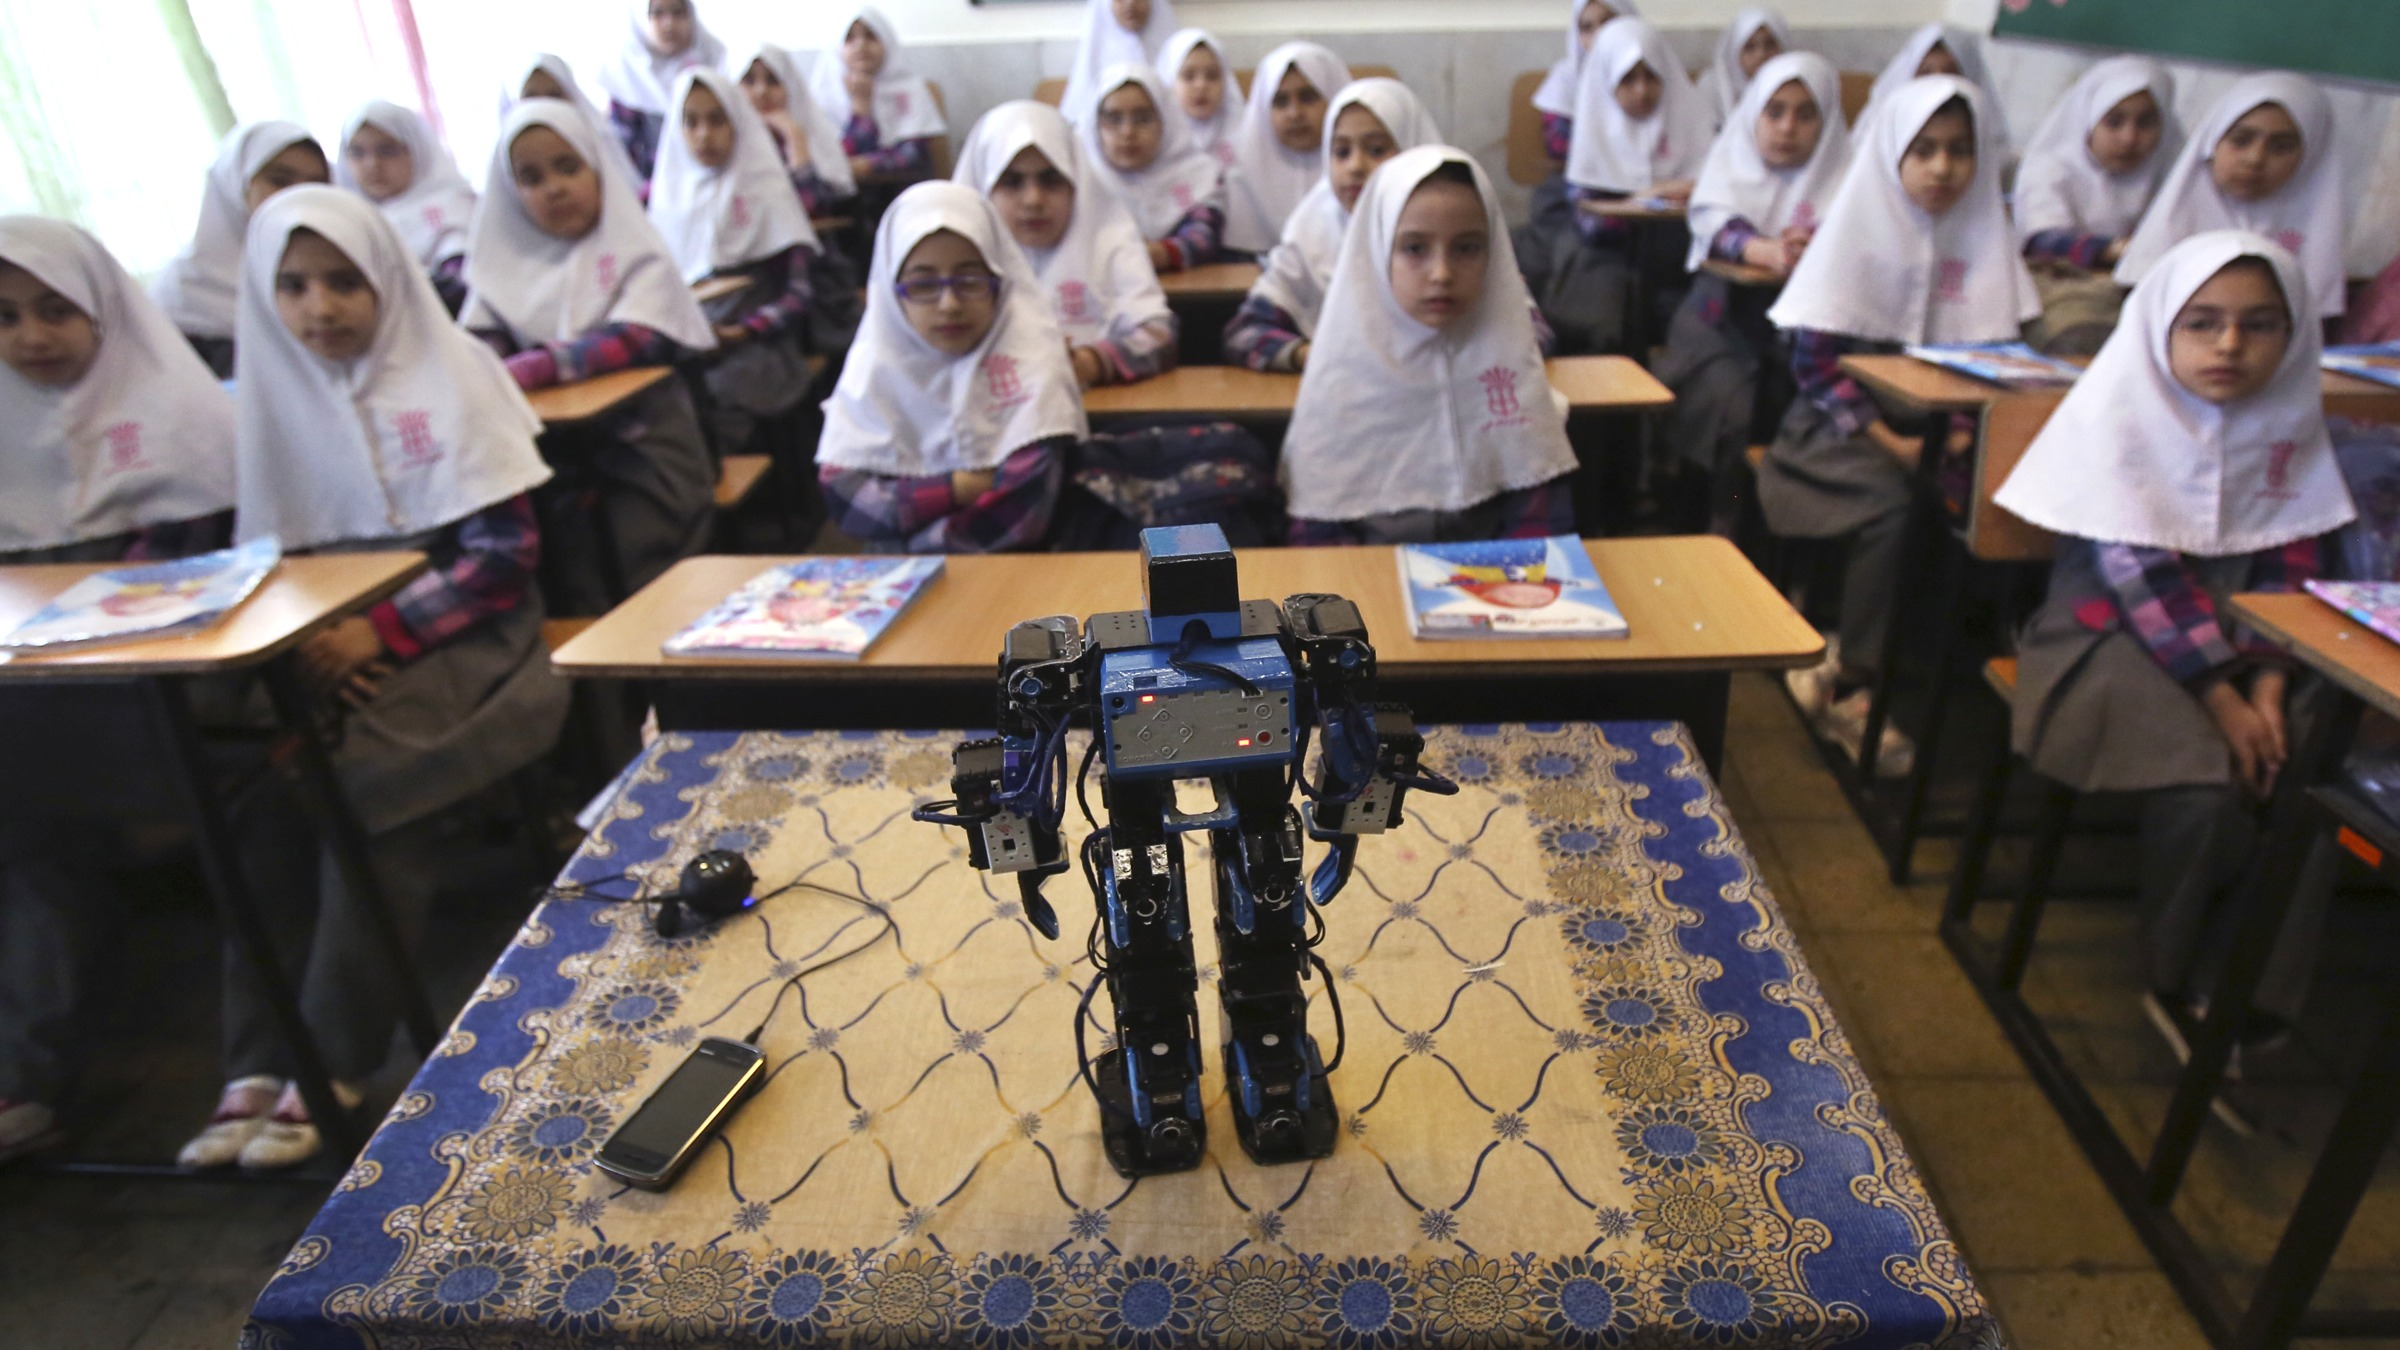 "In this picture taken on Monday, Feb. 24, 2014, Veldan, a humanoid praying robot which is built by Iranian schoolteacher Akbar Rezaie, performs morning prayer in front of Alborz elementary school girls in the city of Varamin some 21 miles (35 kilometers) south of the capital Tehran, Iran. Rezaei who has built a robot to show to children how to execute daily prayers, has innovated an amusing way of encouraging young children to say their daily prayers by using the science of robotics. Out of personal interest and unrelated to his field of study, Akbar Rezaei attended private robotics classes and acquired the skill of assembling and developing customized humanoid robots. He built the robot at home with basic tools and gave it the designation ""Veldan"", a term mentioned in Quran meaning: ""Youth of Heaven"".  By applying some mechanical modifications such as adding up two extra engines Akbar Rezaei managed to let the robot perform praying movements, such as prostration, more easily.(AP Photo/Vahid Salemi)"